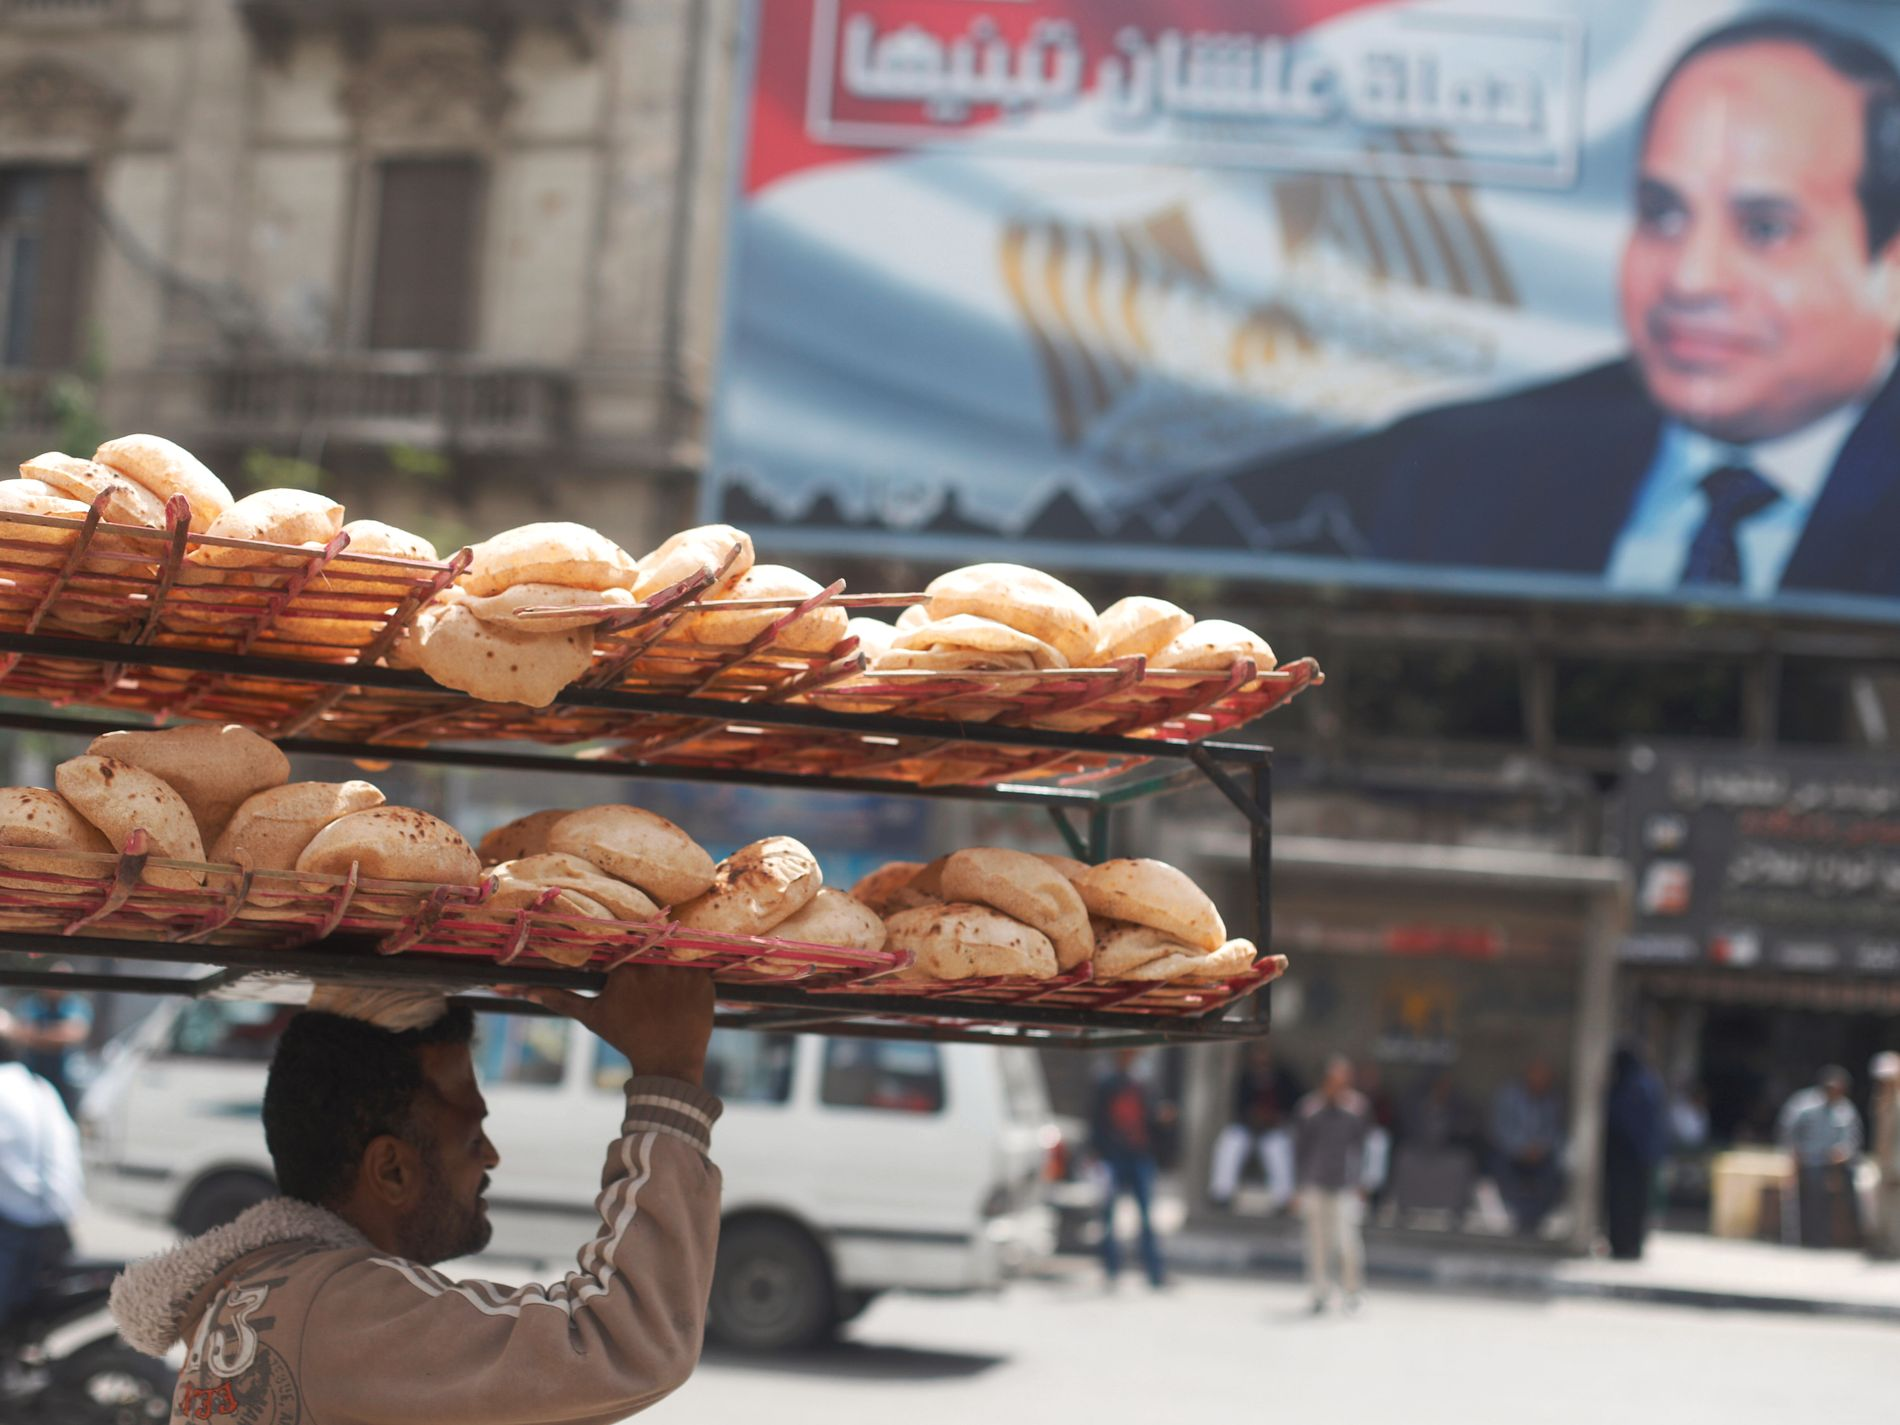 Life changing reforms come to Egypt